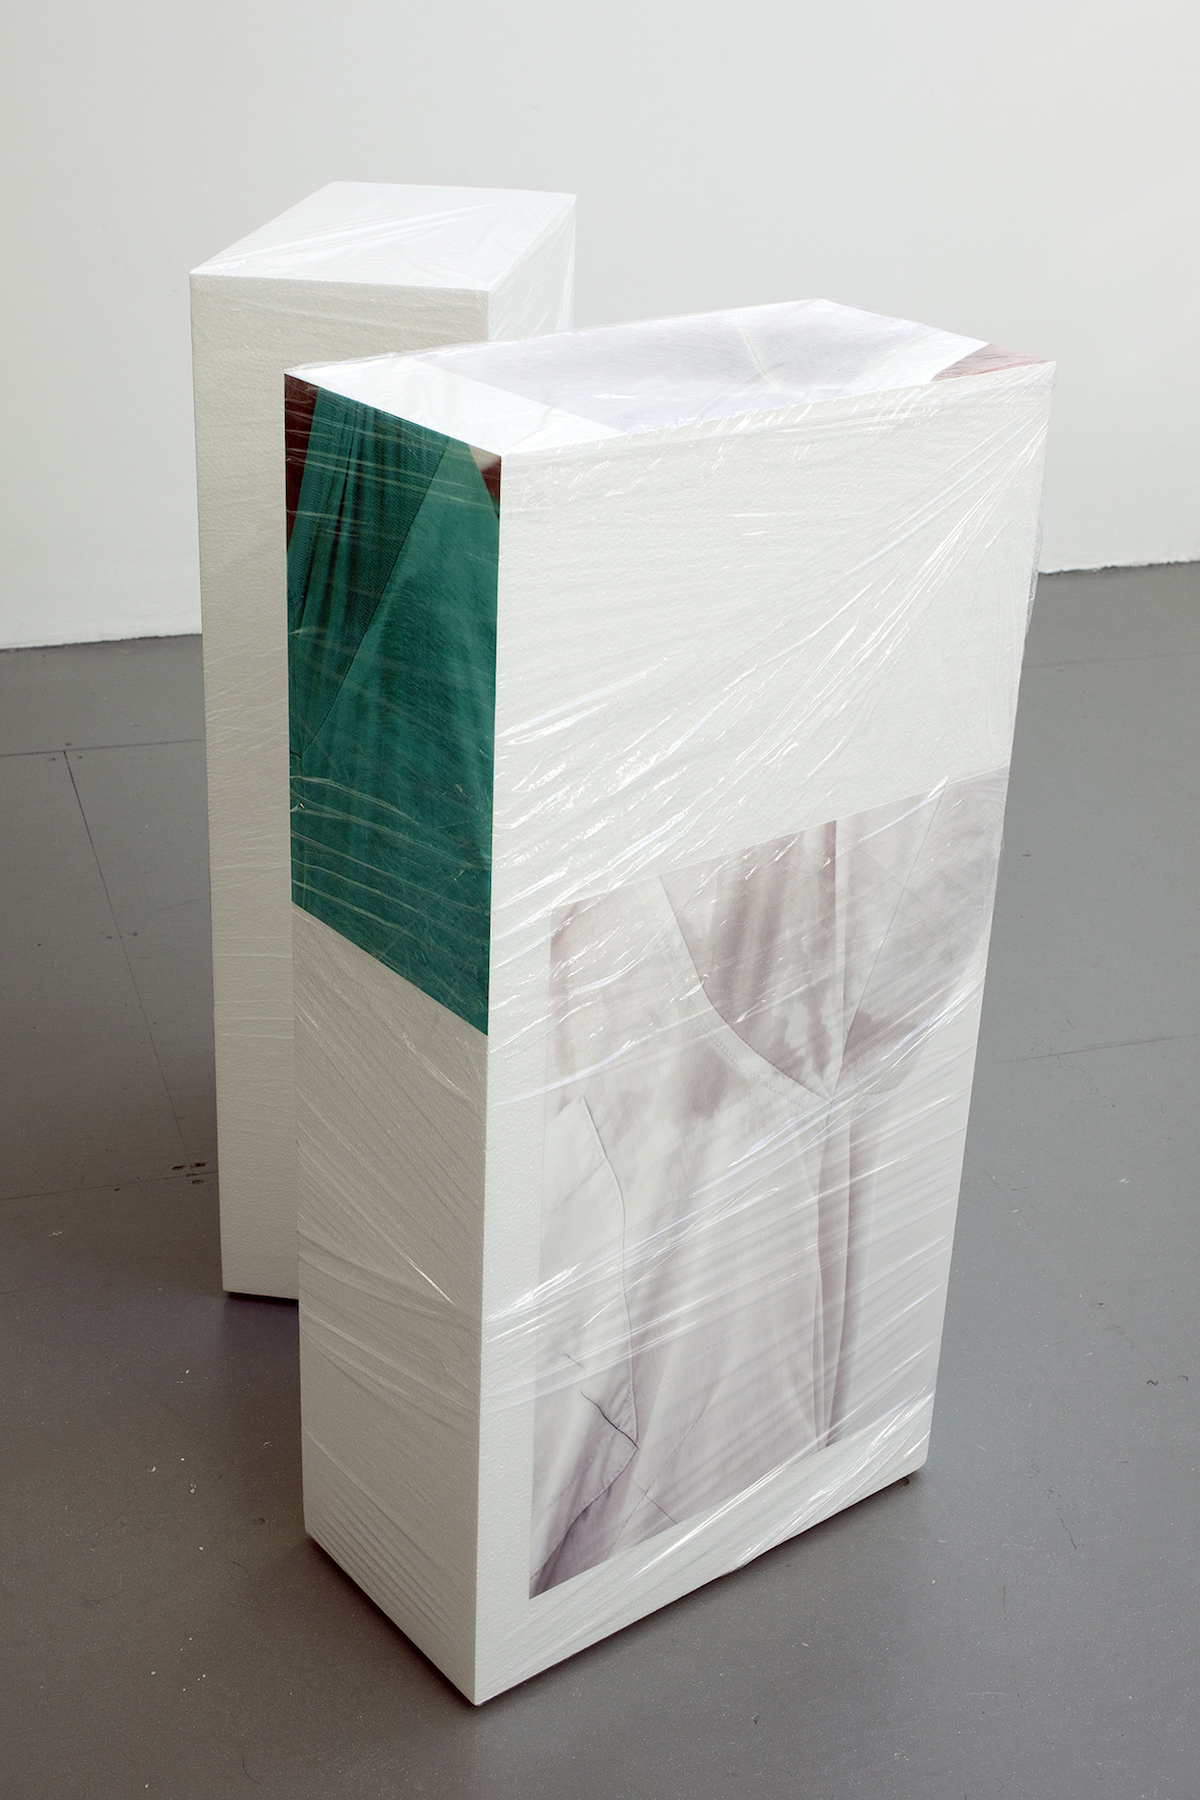 Sweaty Sculpture (front) , 101 x 65 x 100 cm, photo-stickers on polystyrene, cellophane, sponges, radiant plexiglass